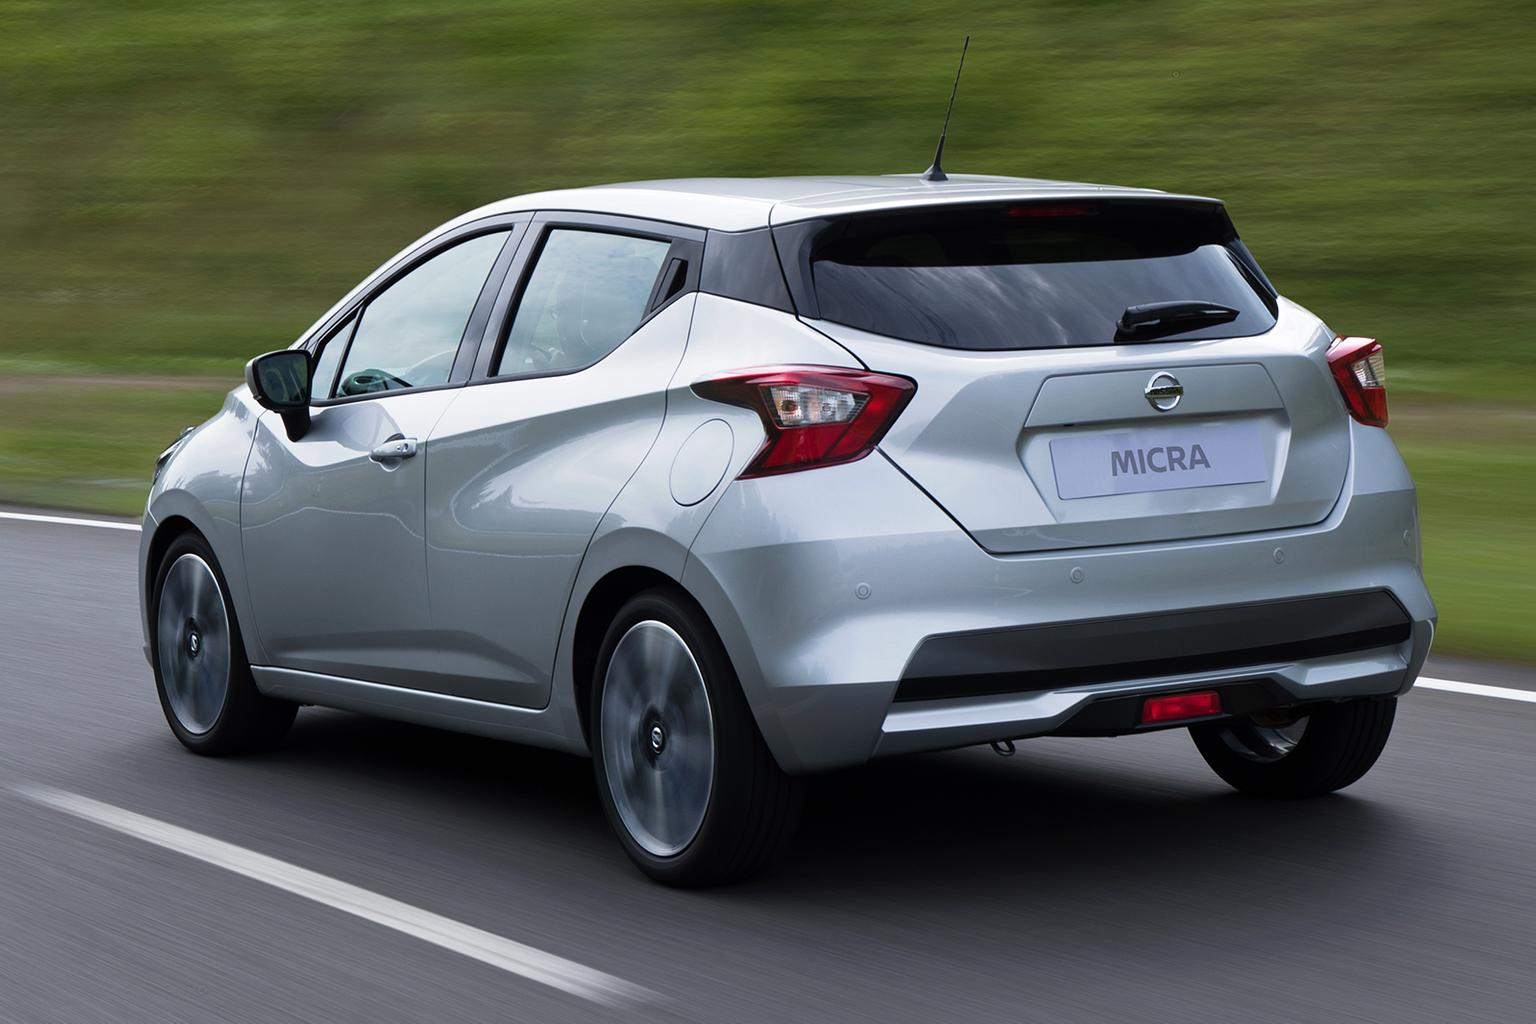 New Nissan Micra to cost from £11,995